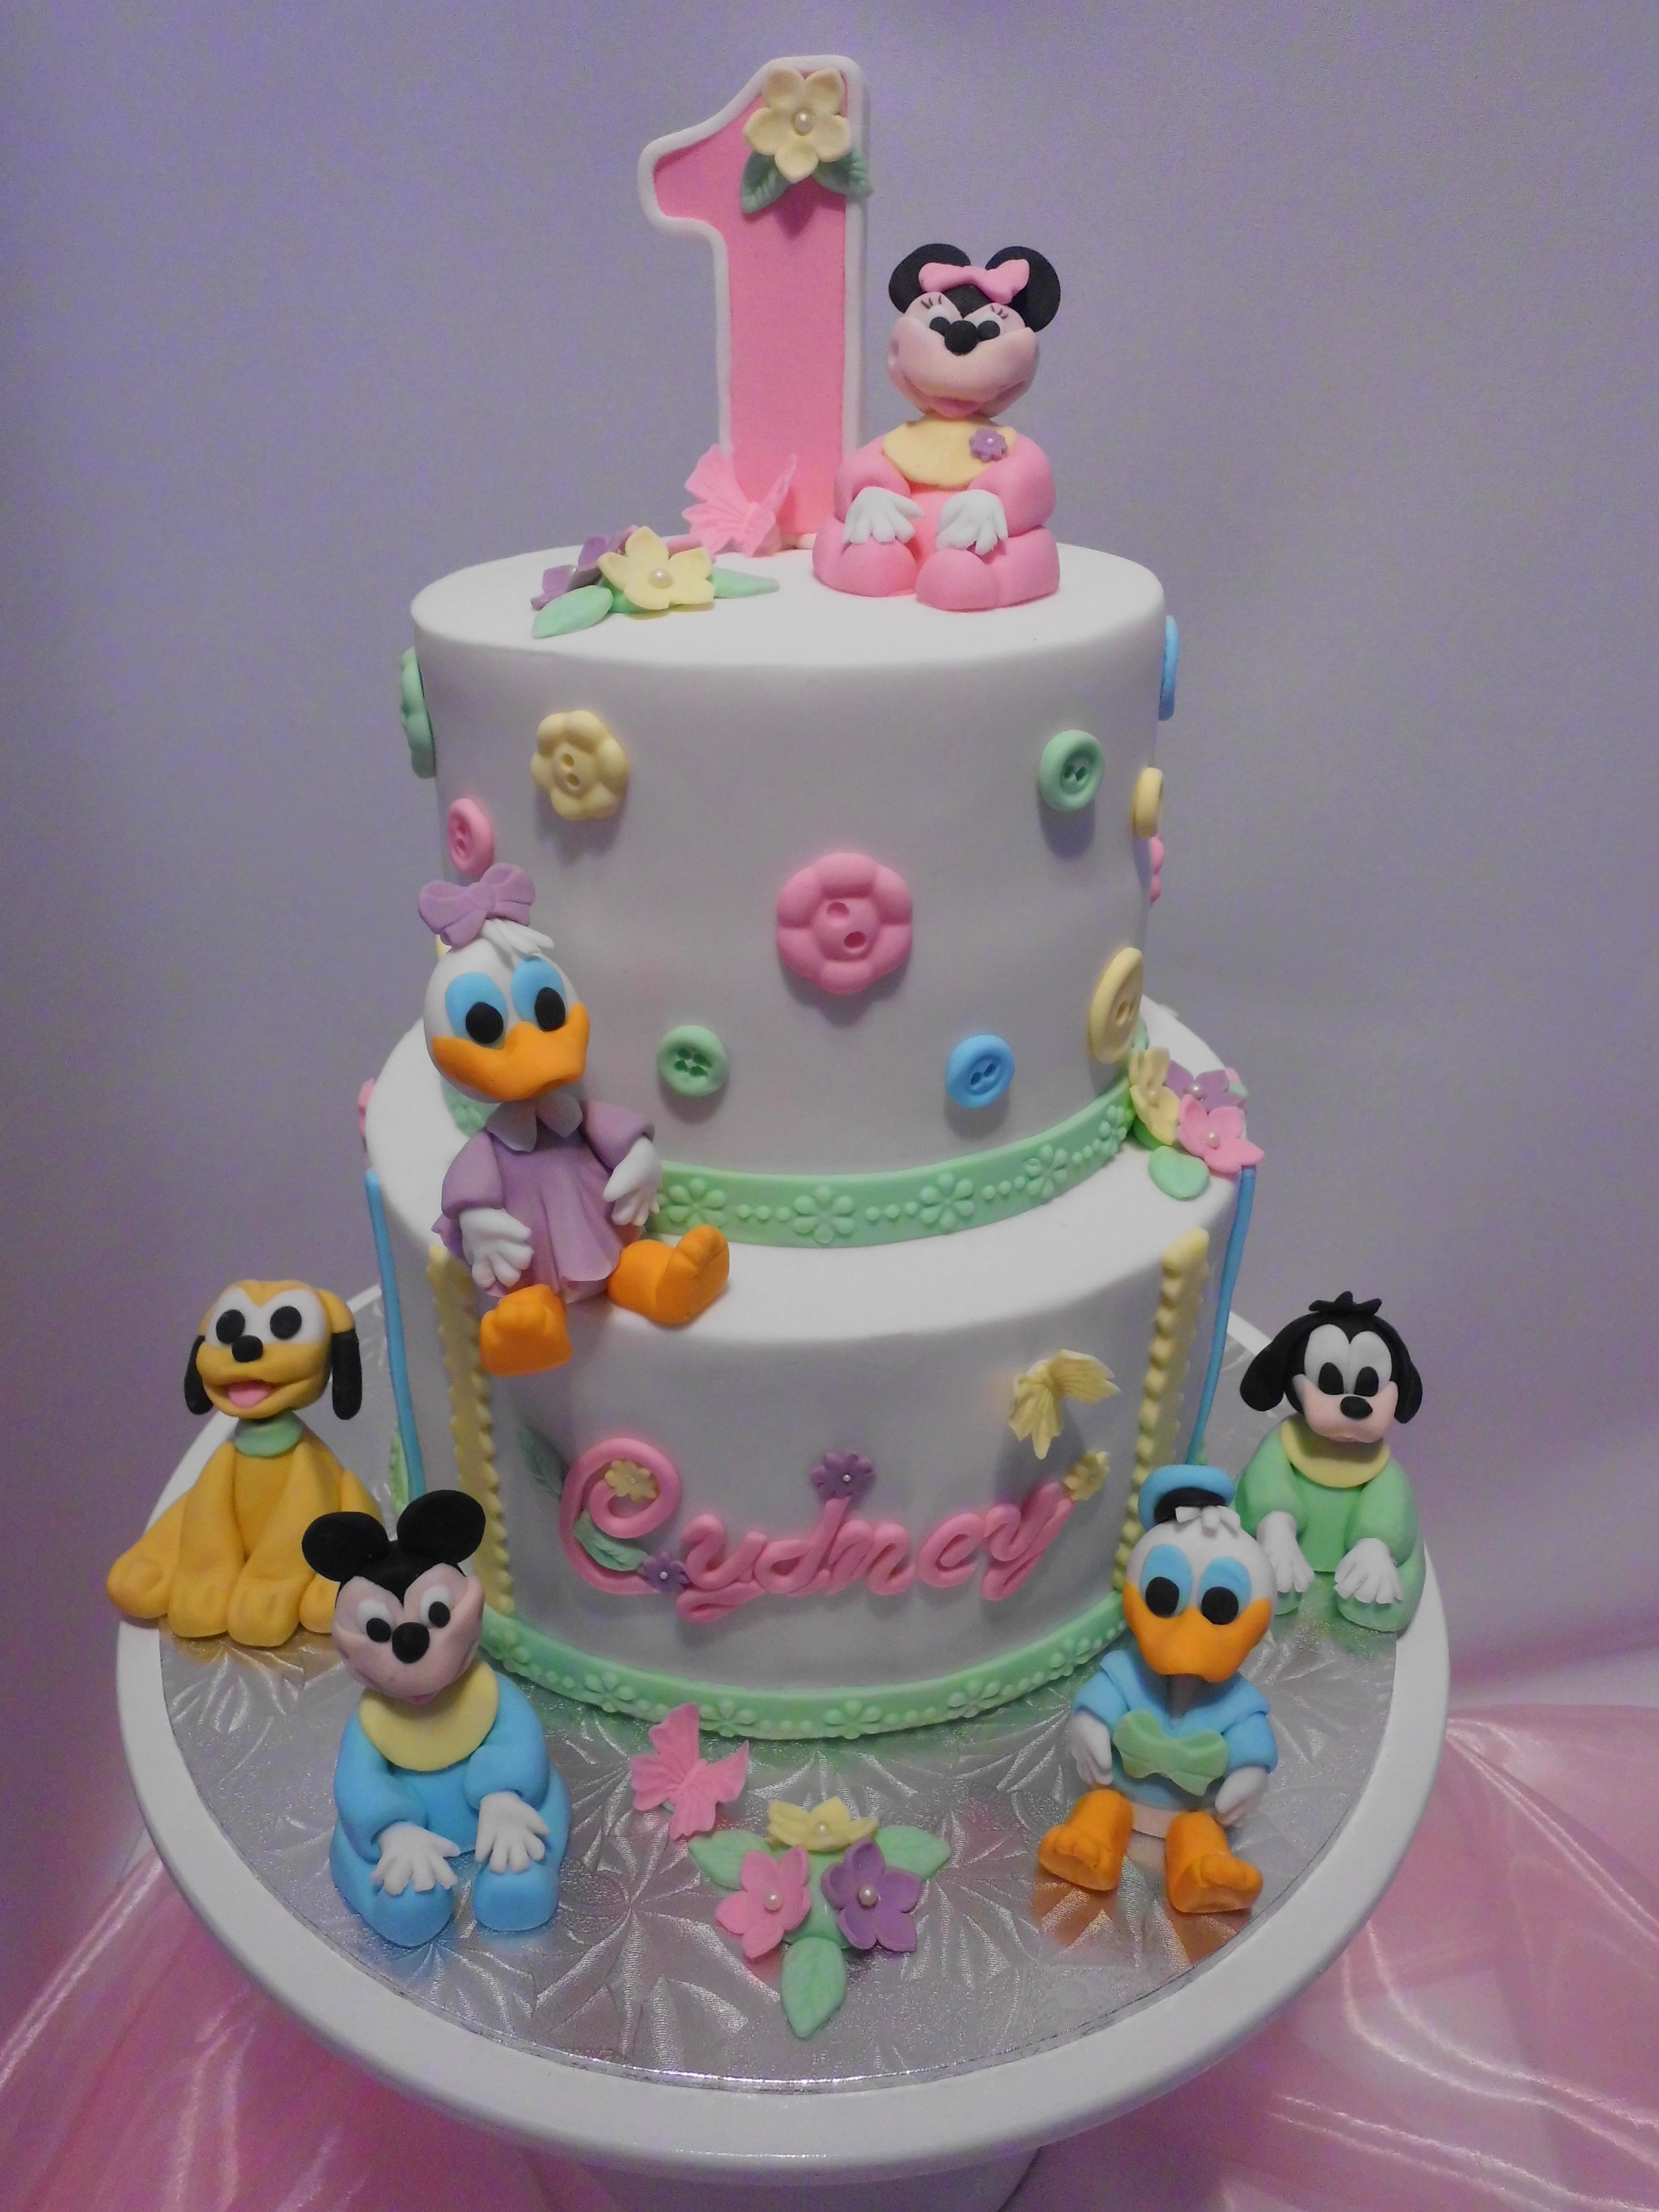 Baby Bday Cake Images : Disney Babies First Birthday Cake - CakeCentral.com